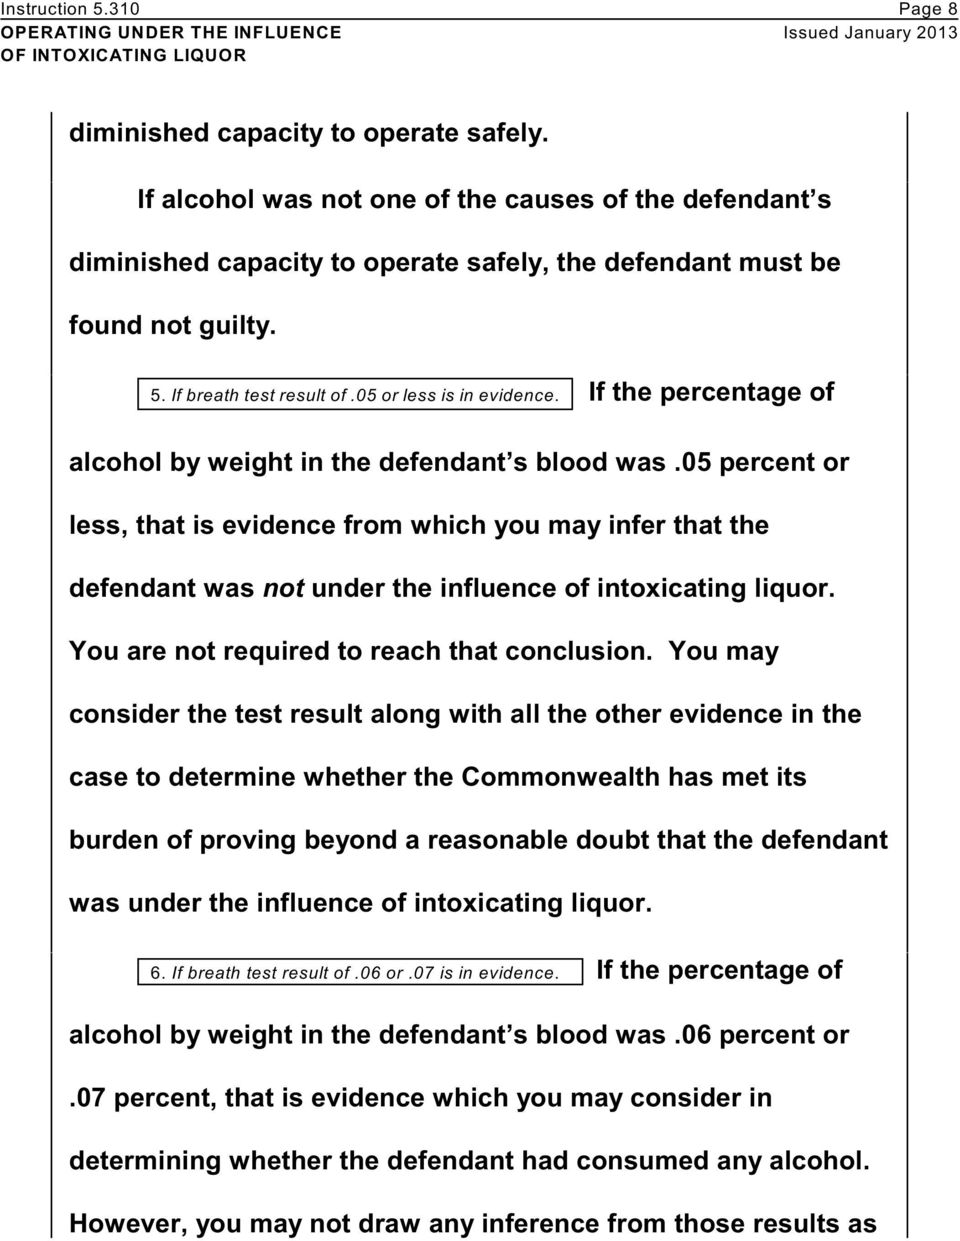 05 percent or less, that is evidence from which you may infer that the defendant was not under the influence of intoxicating liquor. You are not required to reach that conclusion.